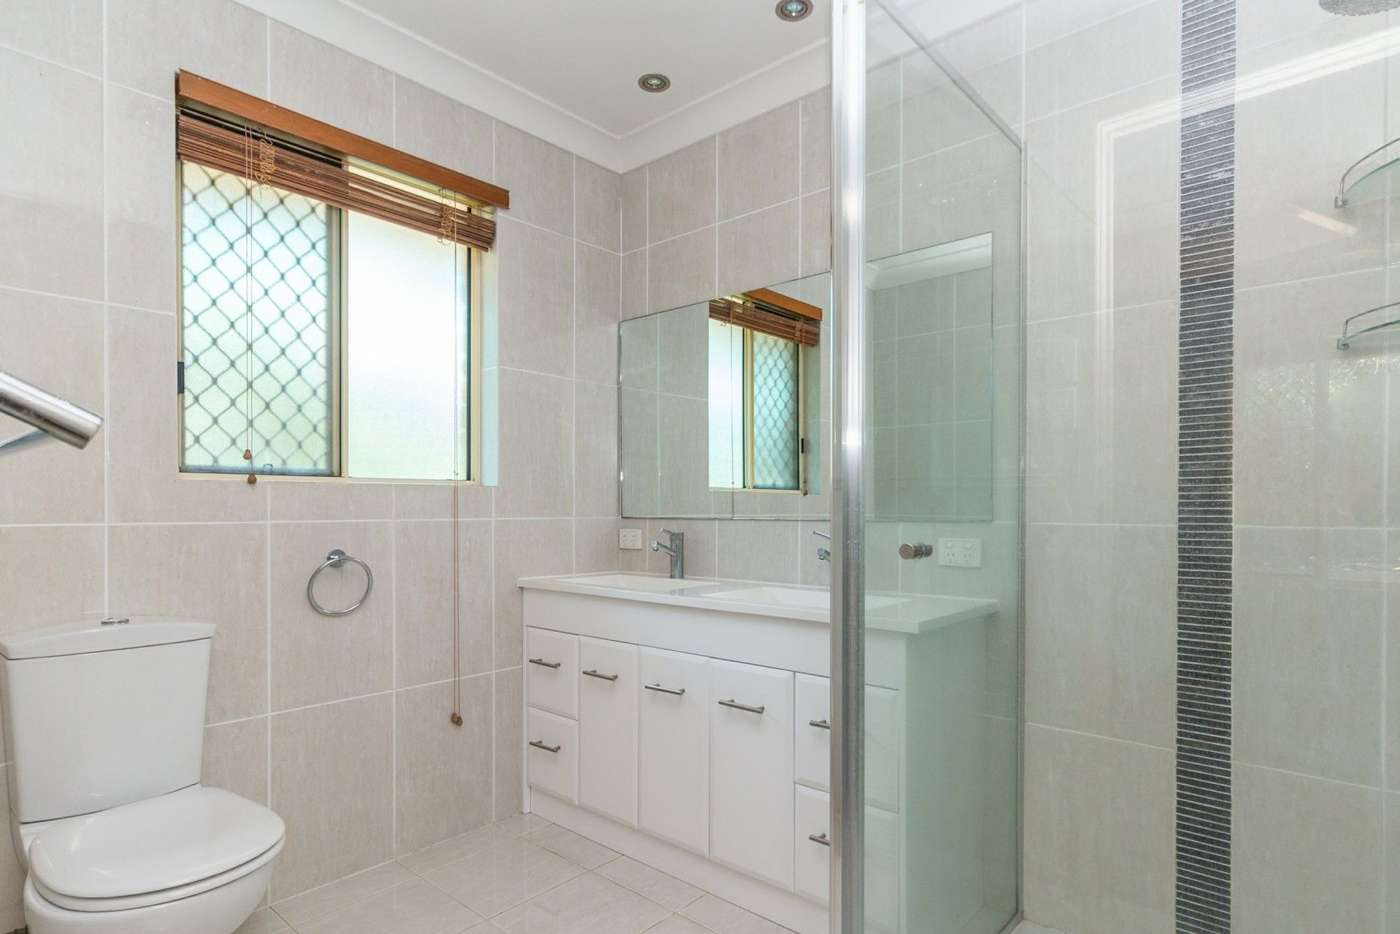 Sixth view of Homely house listing, 18 Baccata Place, Forest Lake QLD 4078